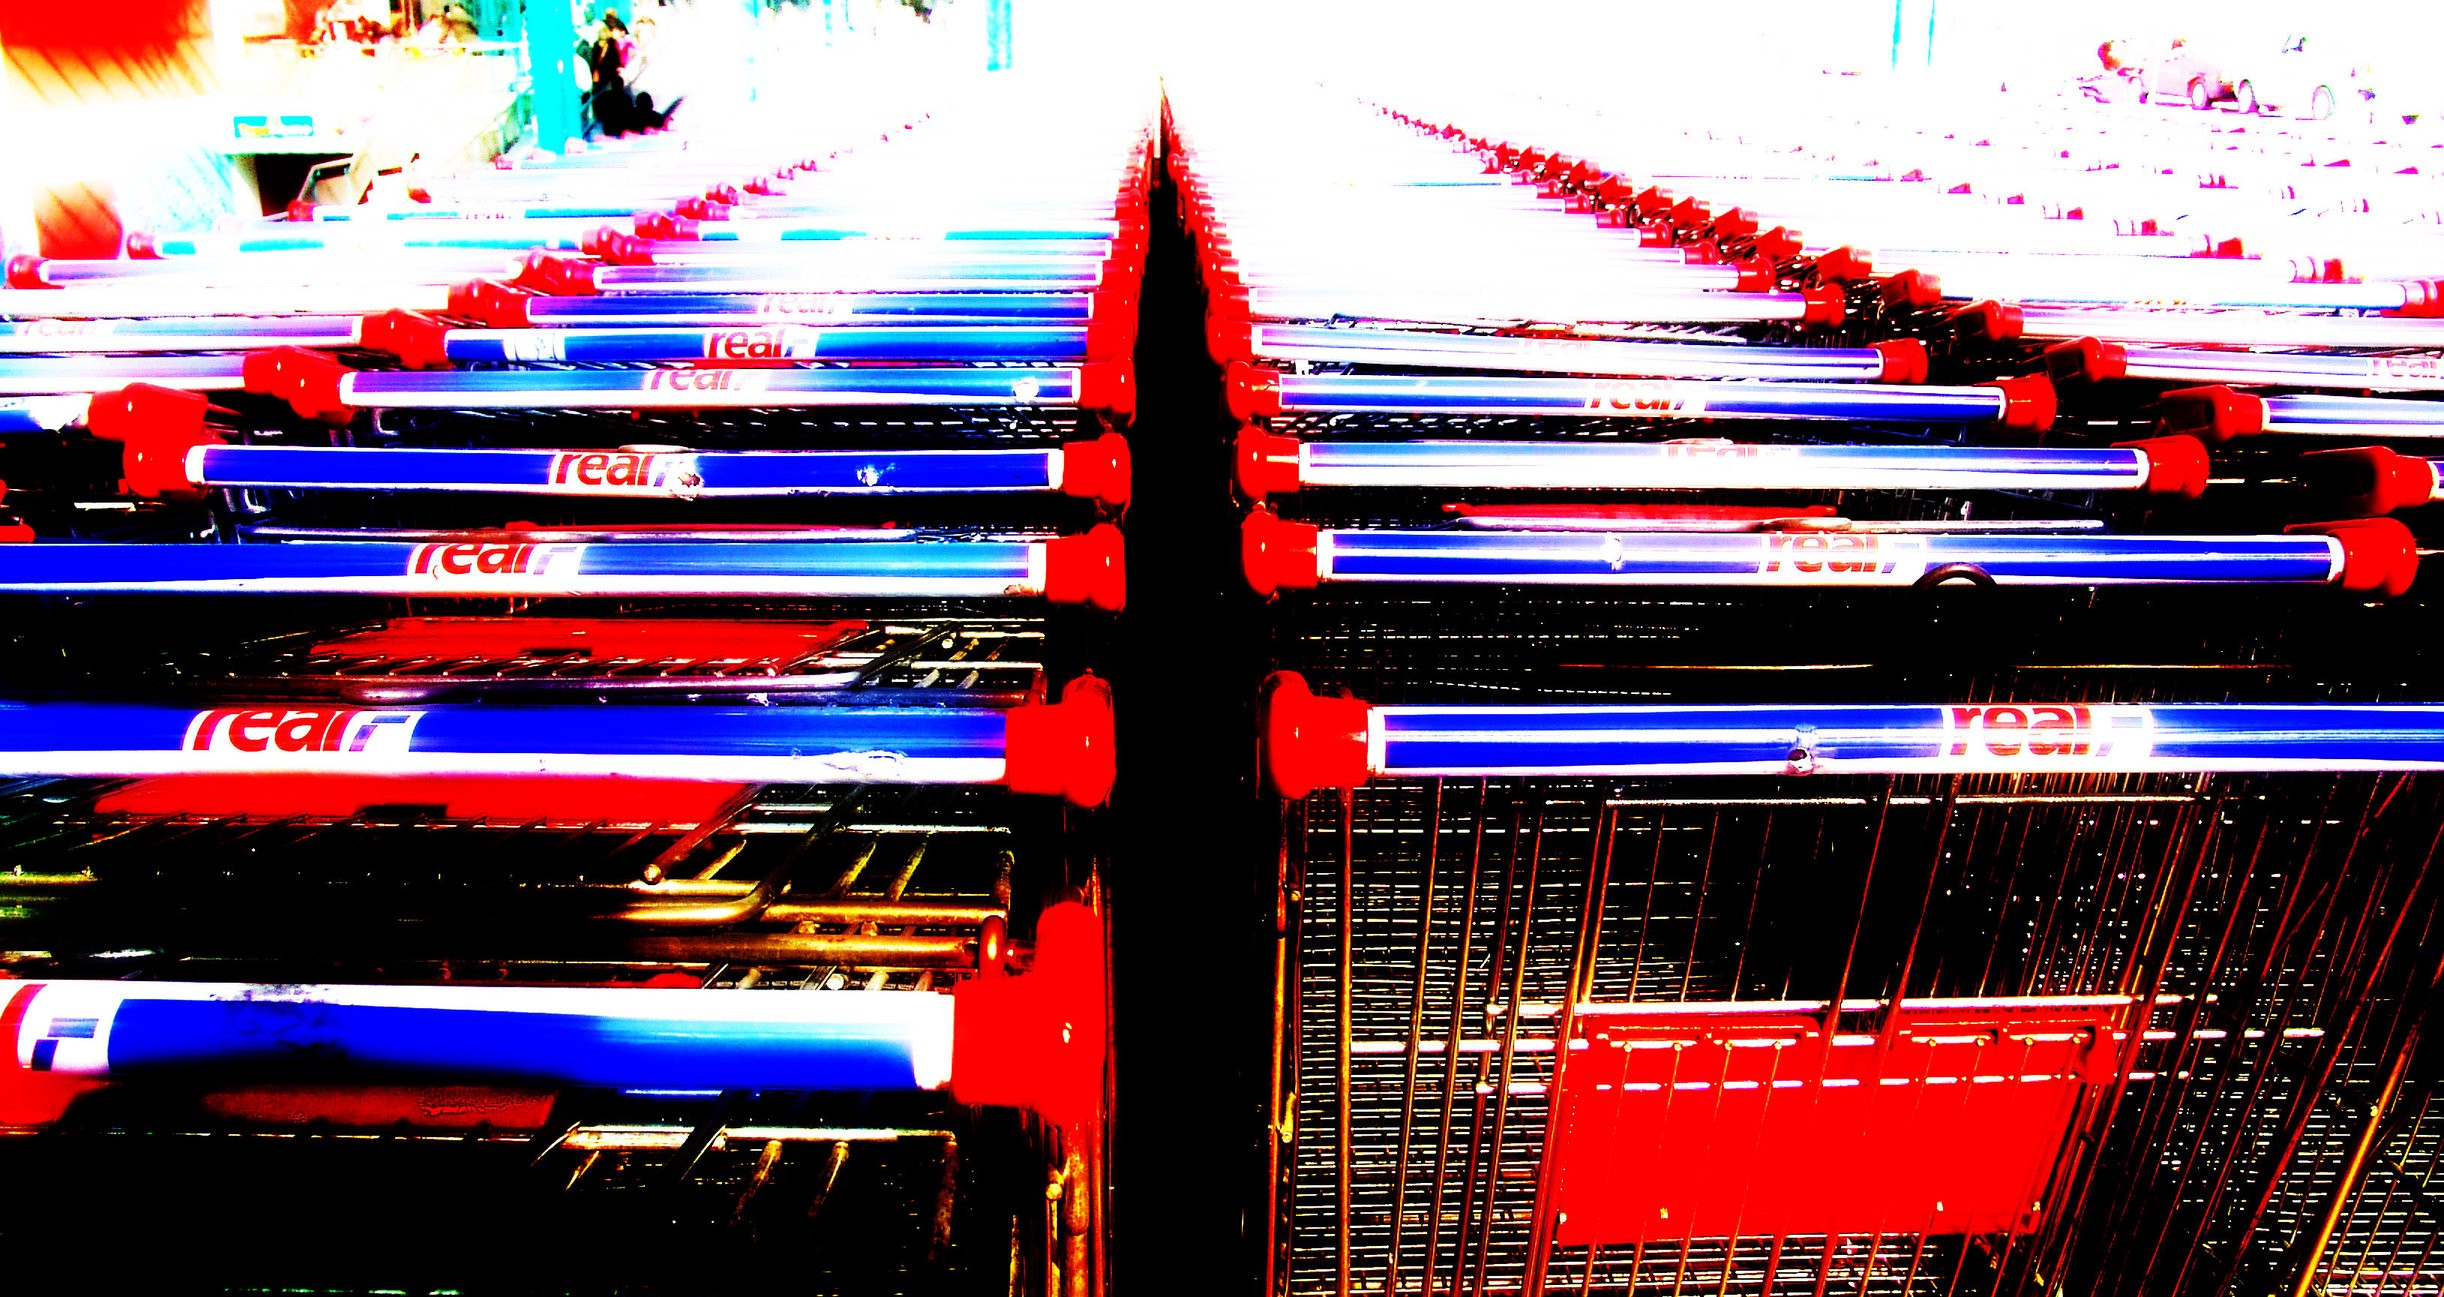 Hundreds of shopping carts lined up neatly.